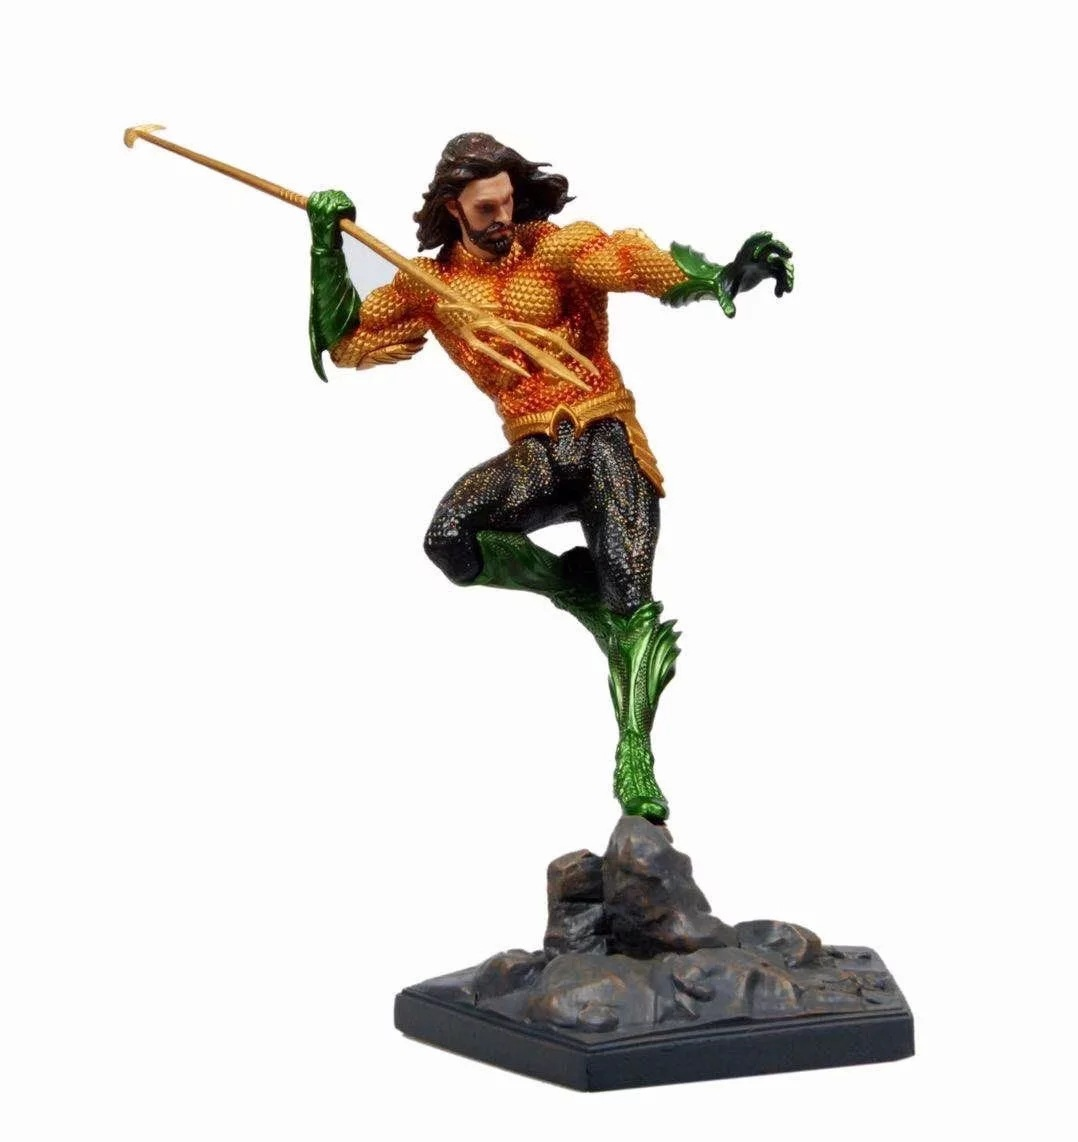 DC Justice League Aquaman Statue PVC Collectible Action Figure Toy